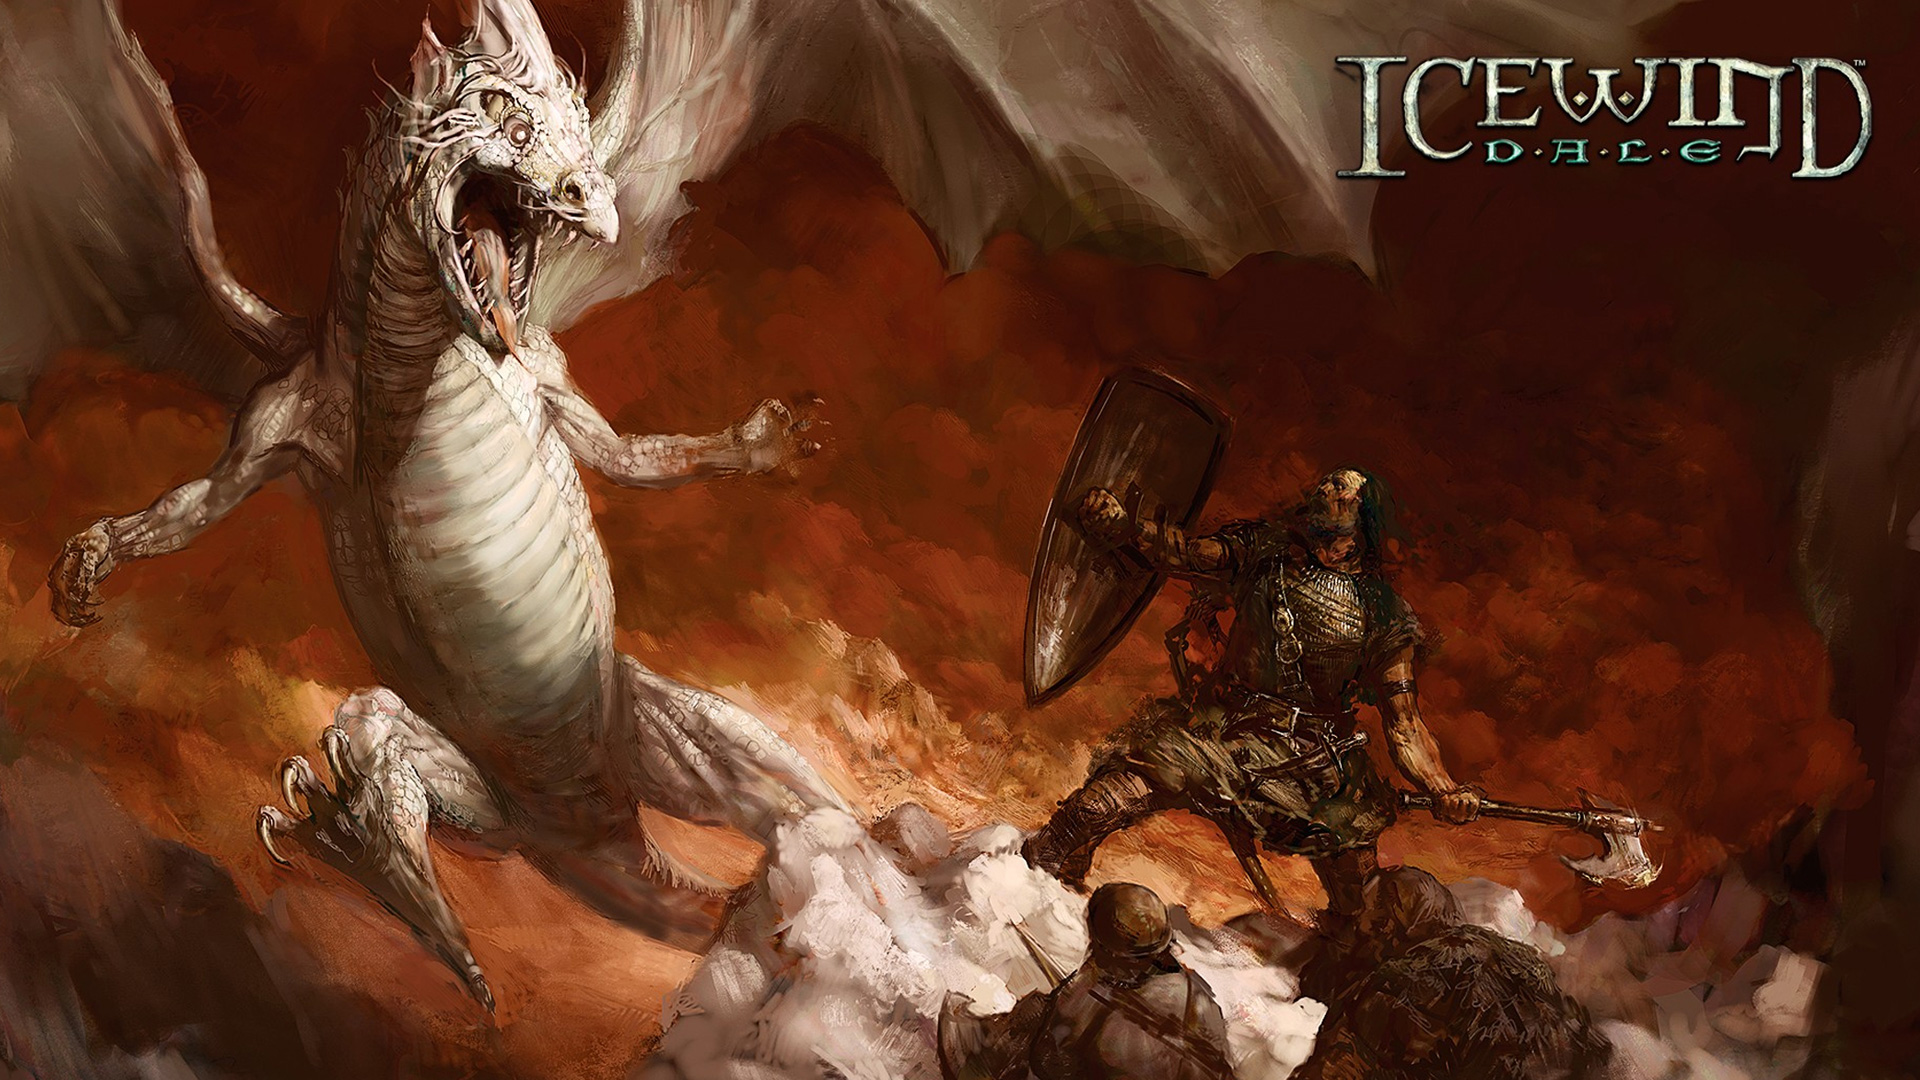 Free Icewind Dale Wallpaper in 1920x1080